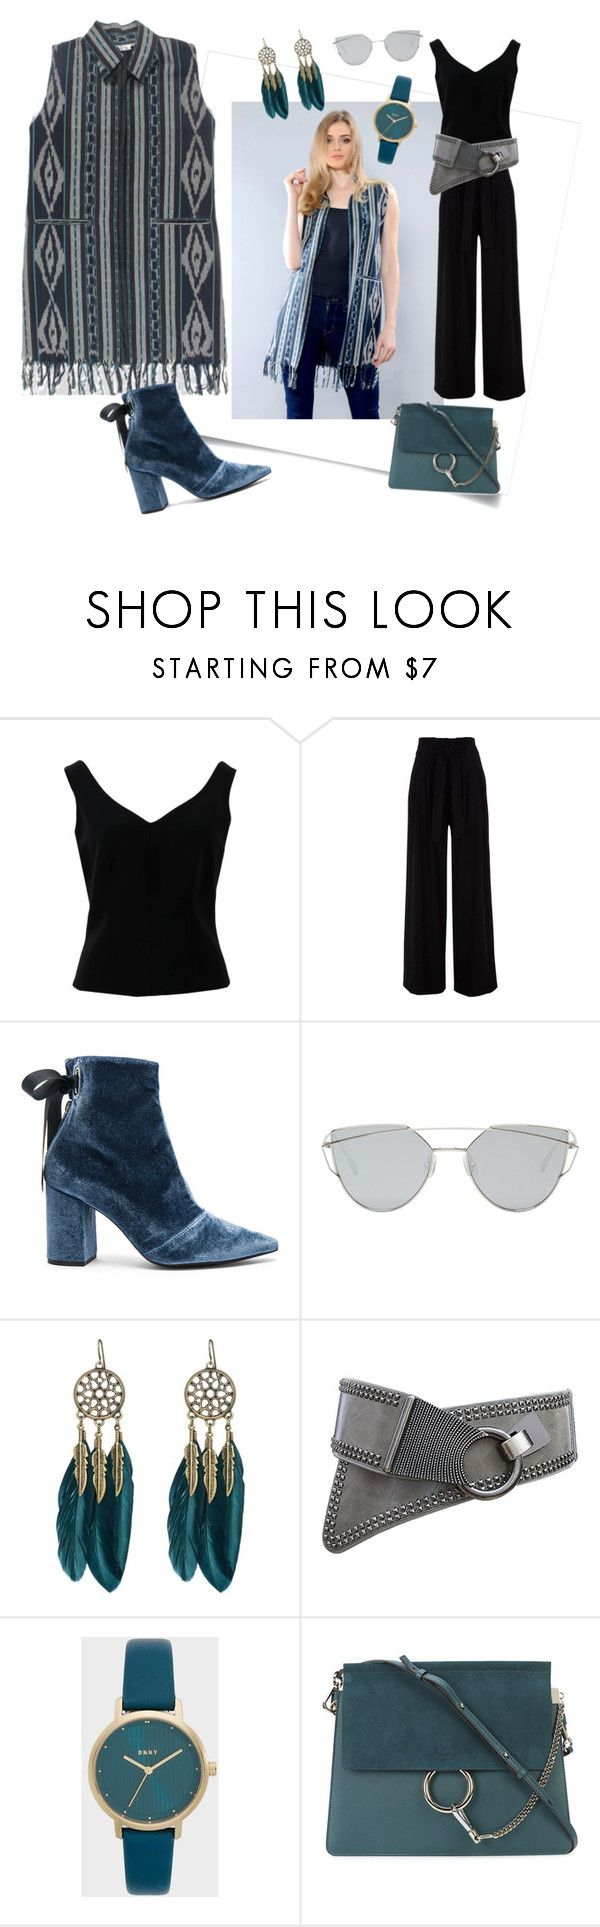 """""""Tradition to Urban"""" by kanzicollection on Polyvore featuring ADAM, self-portrait, Gentle Monster, WithChic, Chloé and modern"""